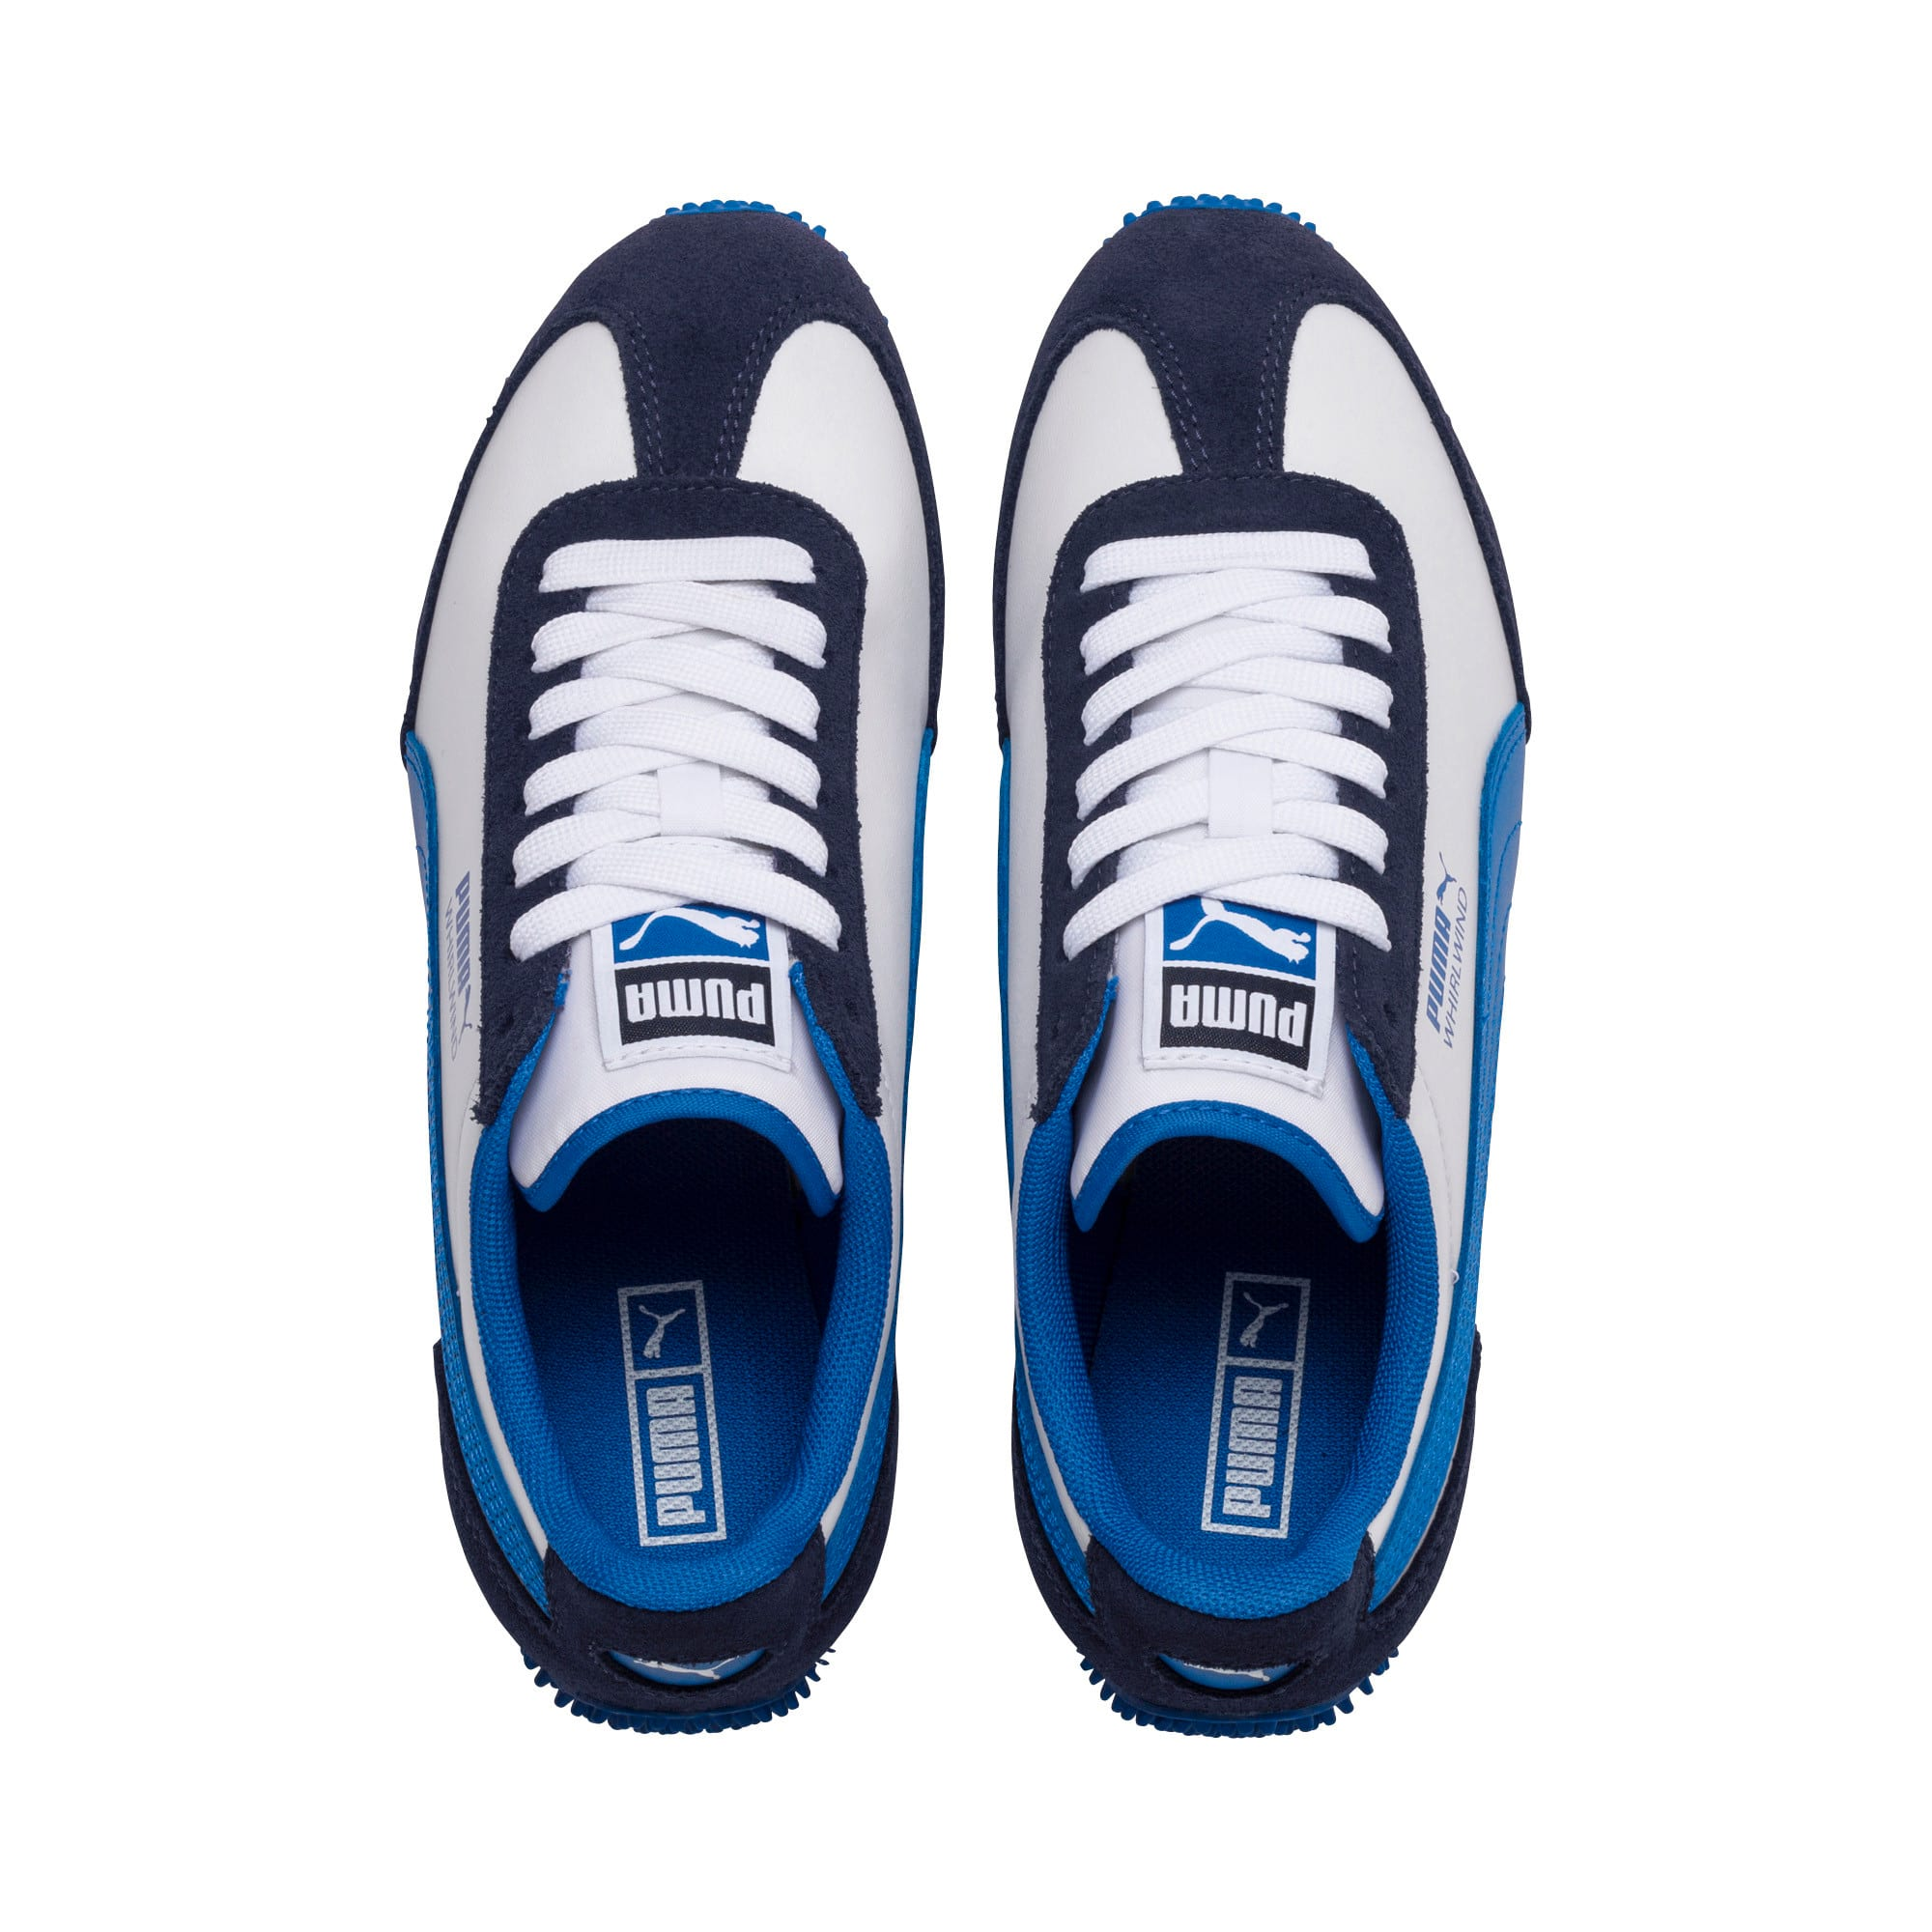 Thumbnail 6 of Kid's Whirlwind Trainers, White-Peacoat-Strong Blue, medium-IND